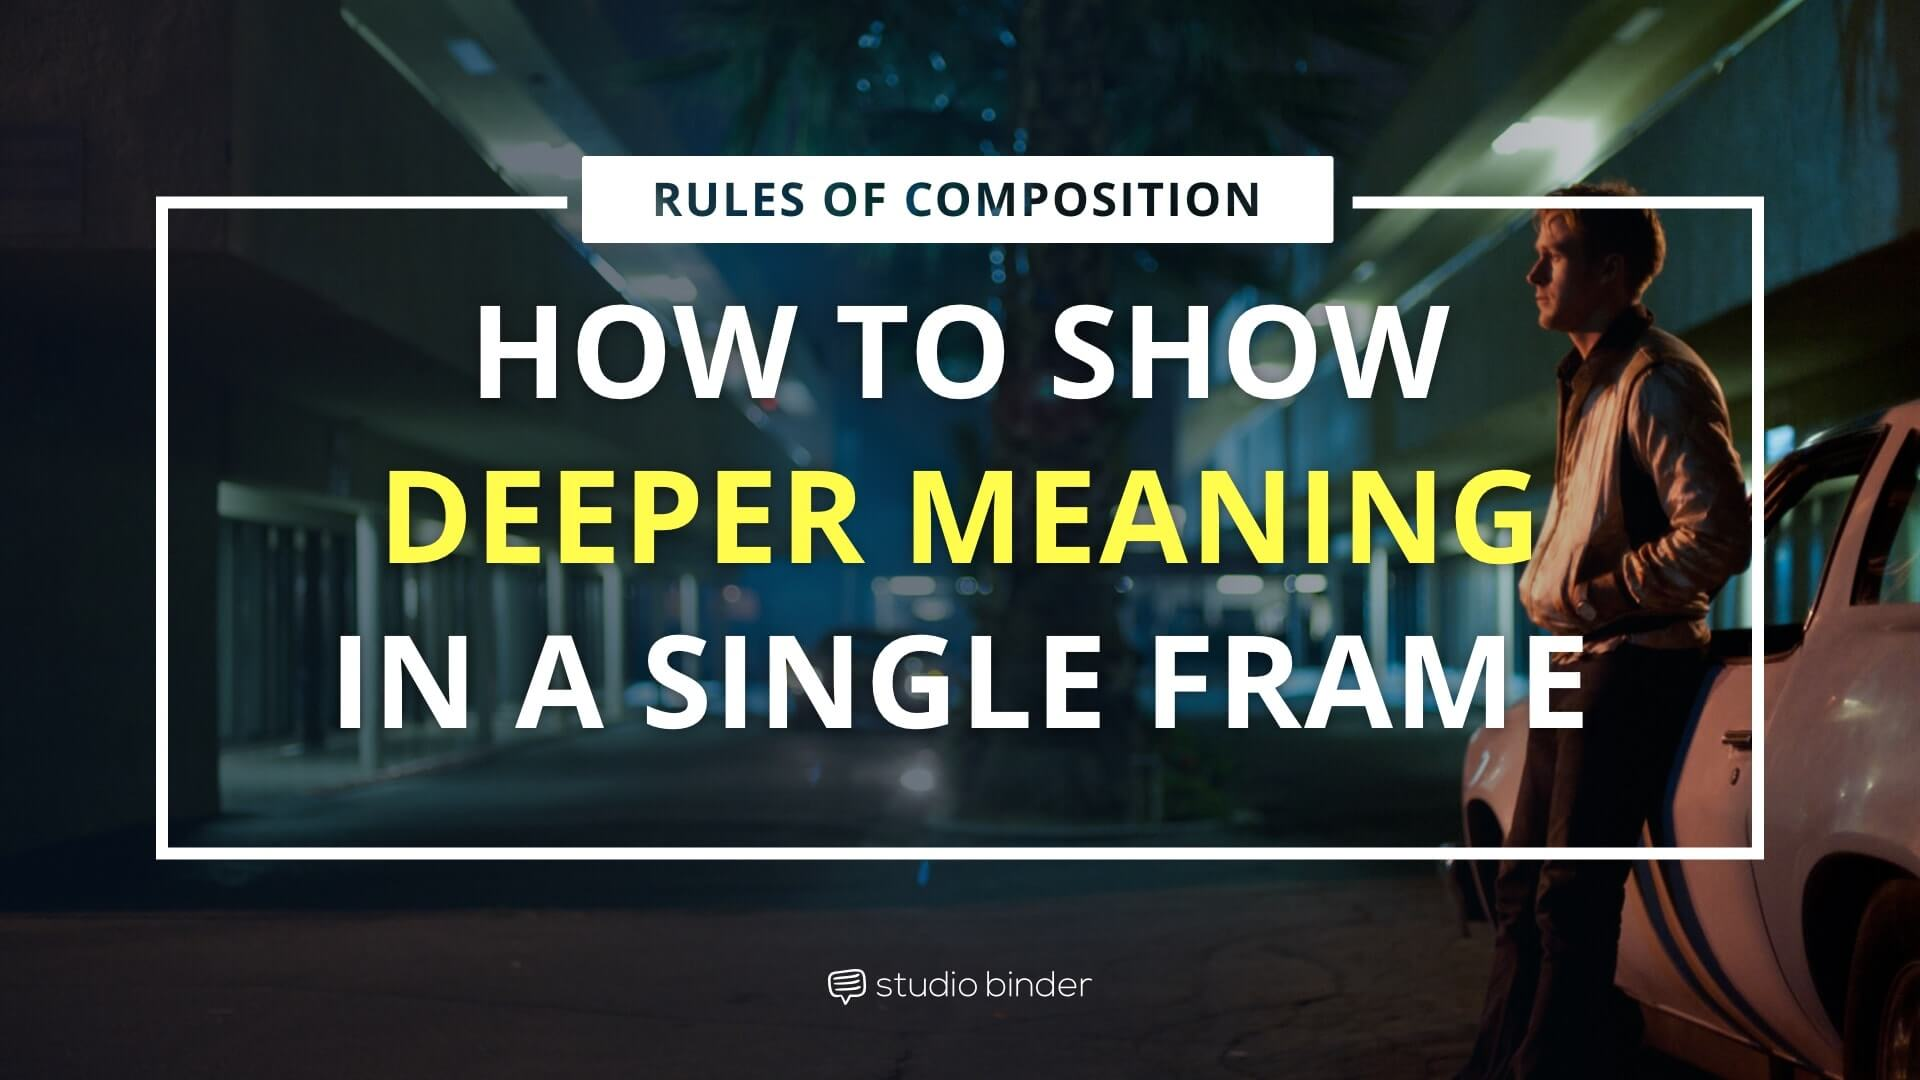 Rules of Composition - How to Show Deeper meaning in a Single Frame - StudioBinder